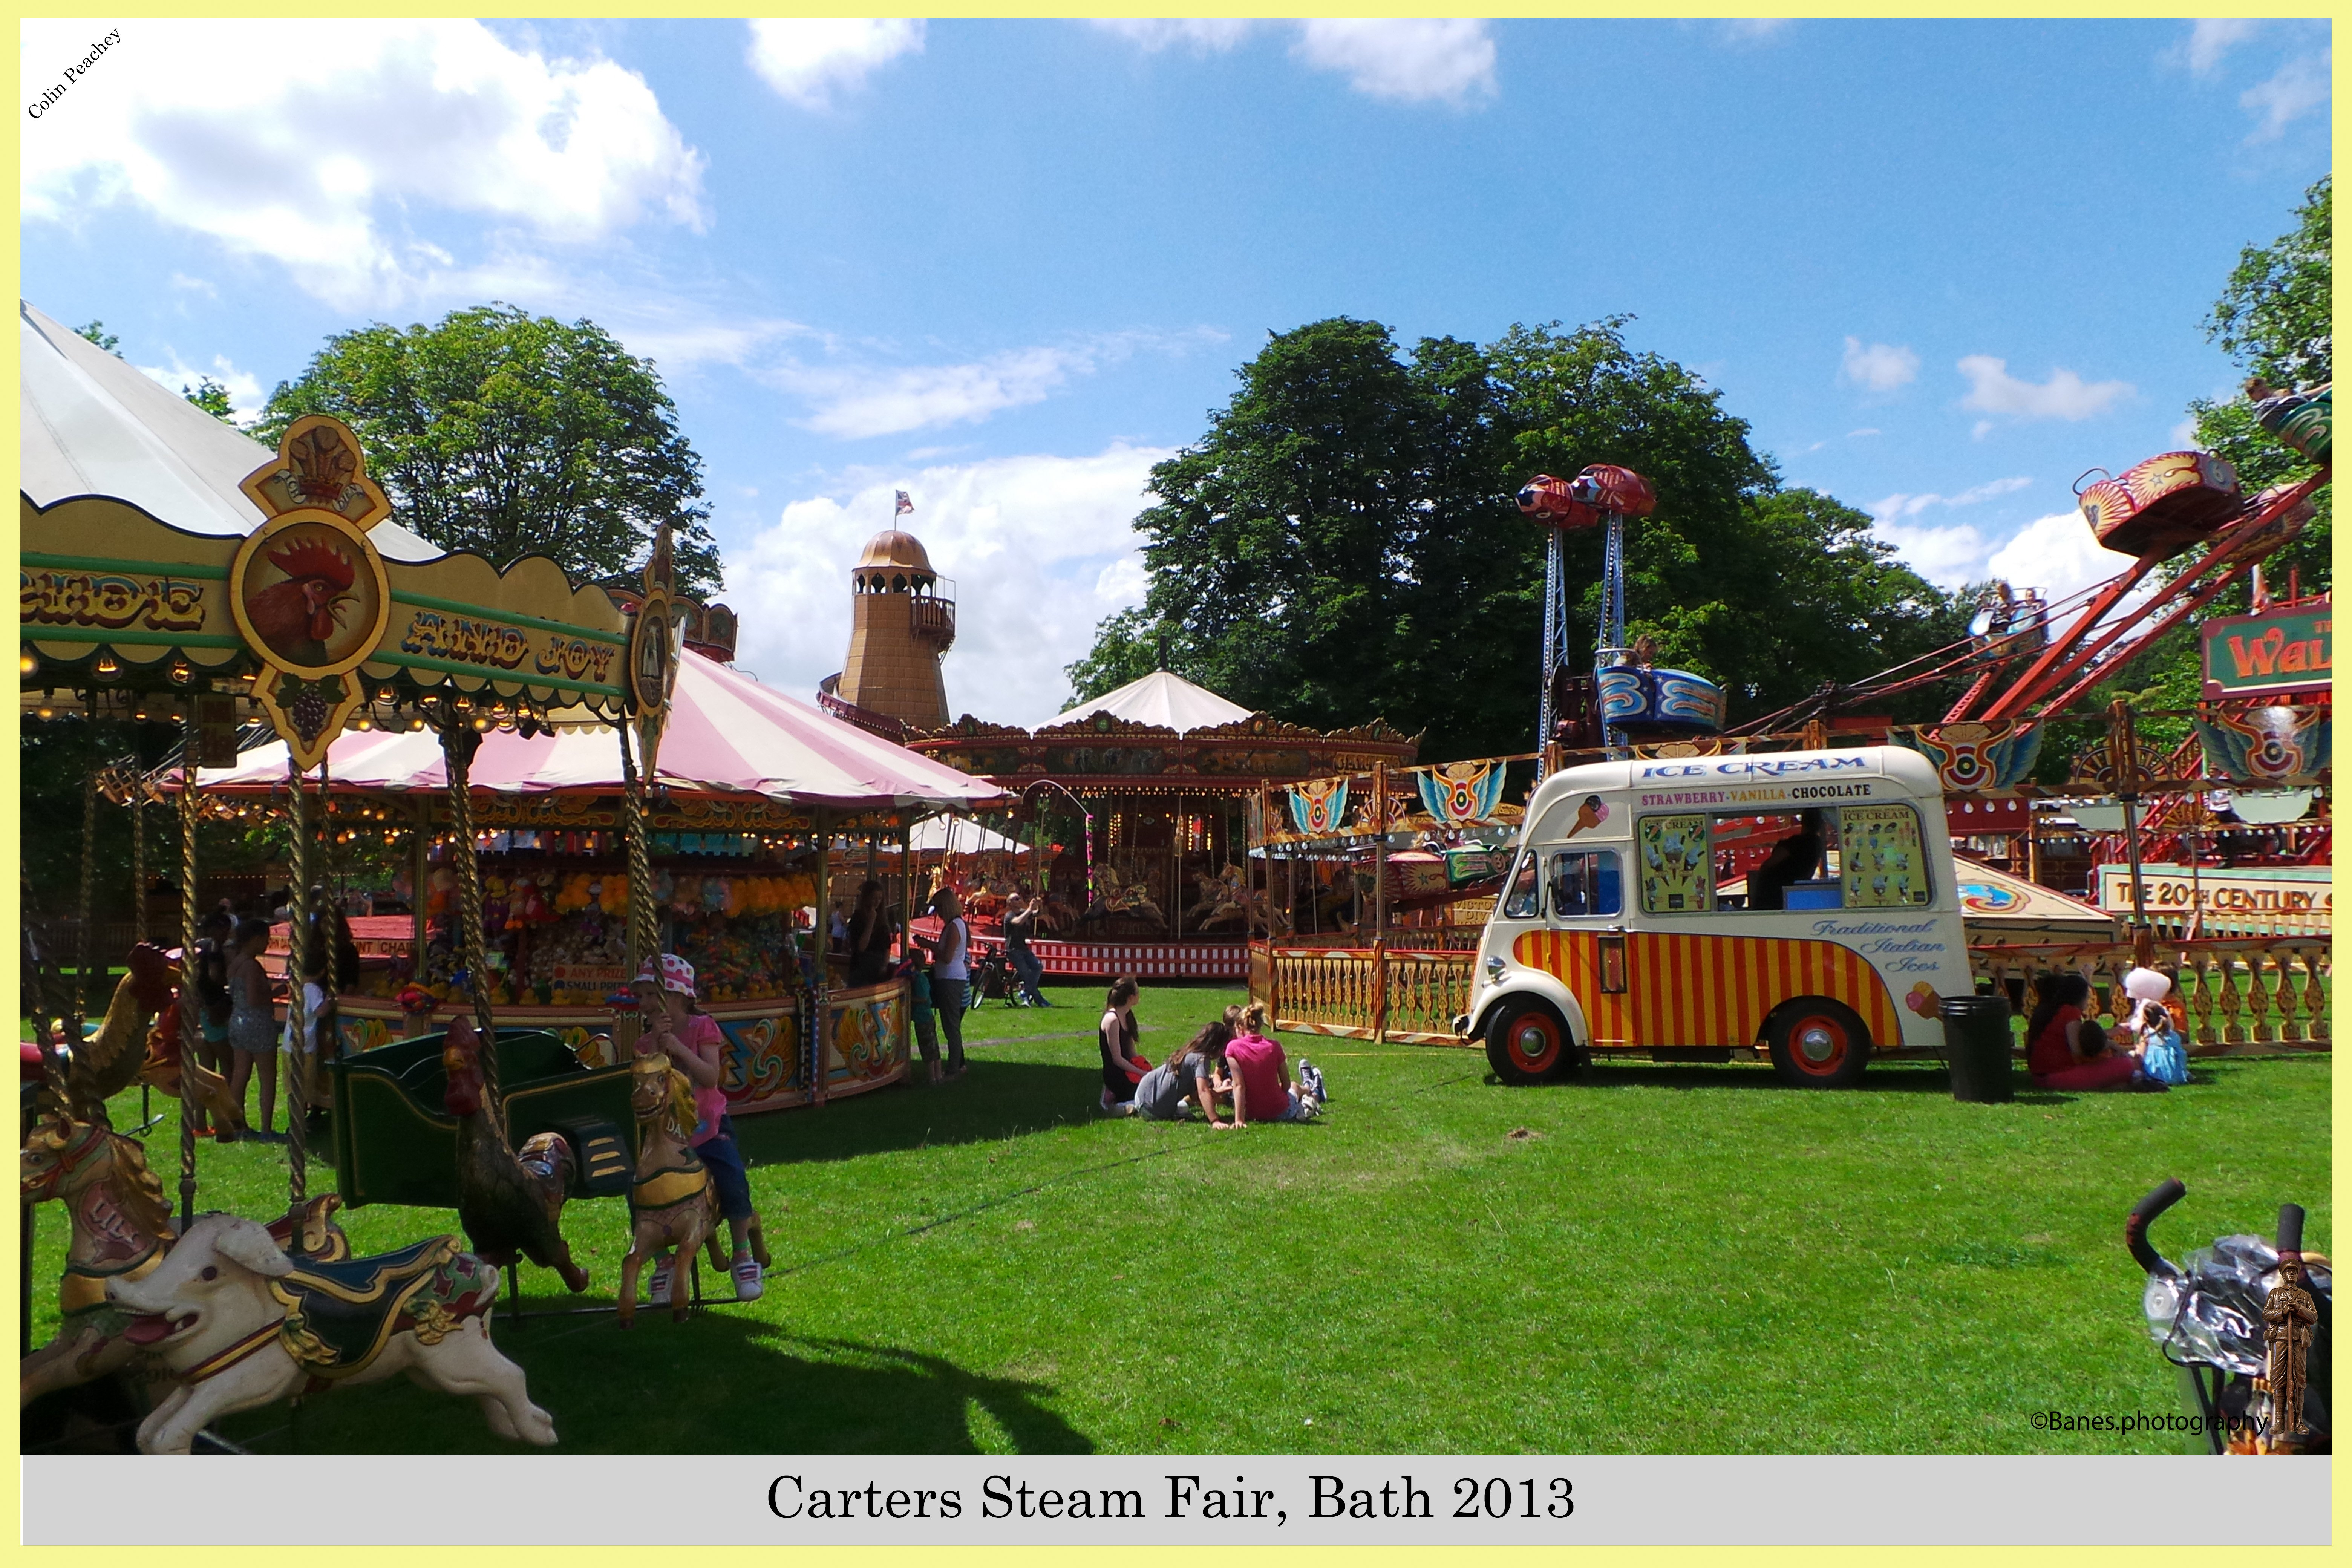 Carters Steam Fair, Bath (11) 02-08-2013 (Postcard)-2